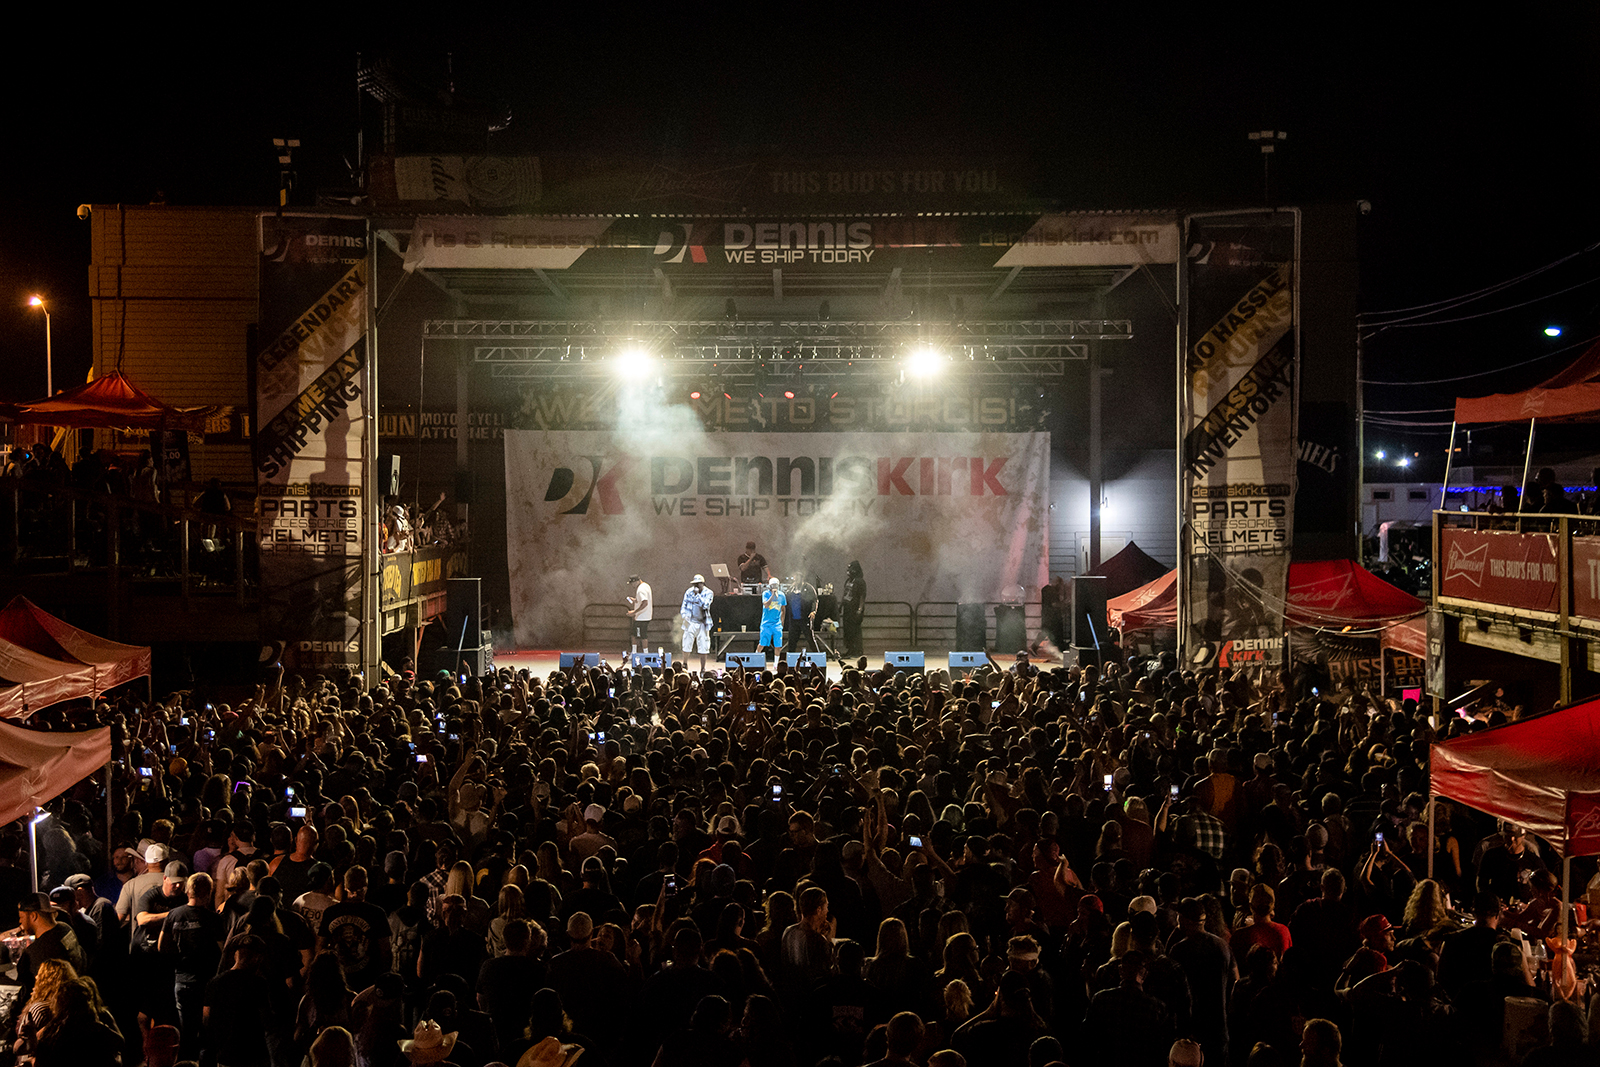 Bone Thugs-n-Harmony performs at the Iron Horse Saloon during the 80th annual Sturgis Motorcycle Rally on Saturday, August 15, in Sturgis, South Dakota.